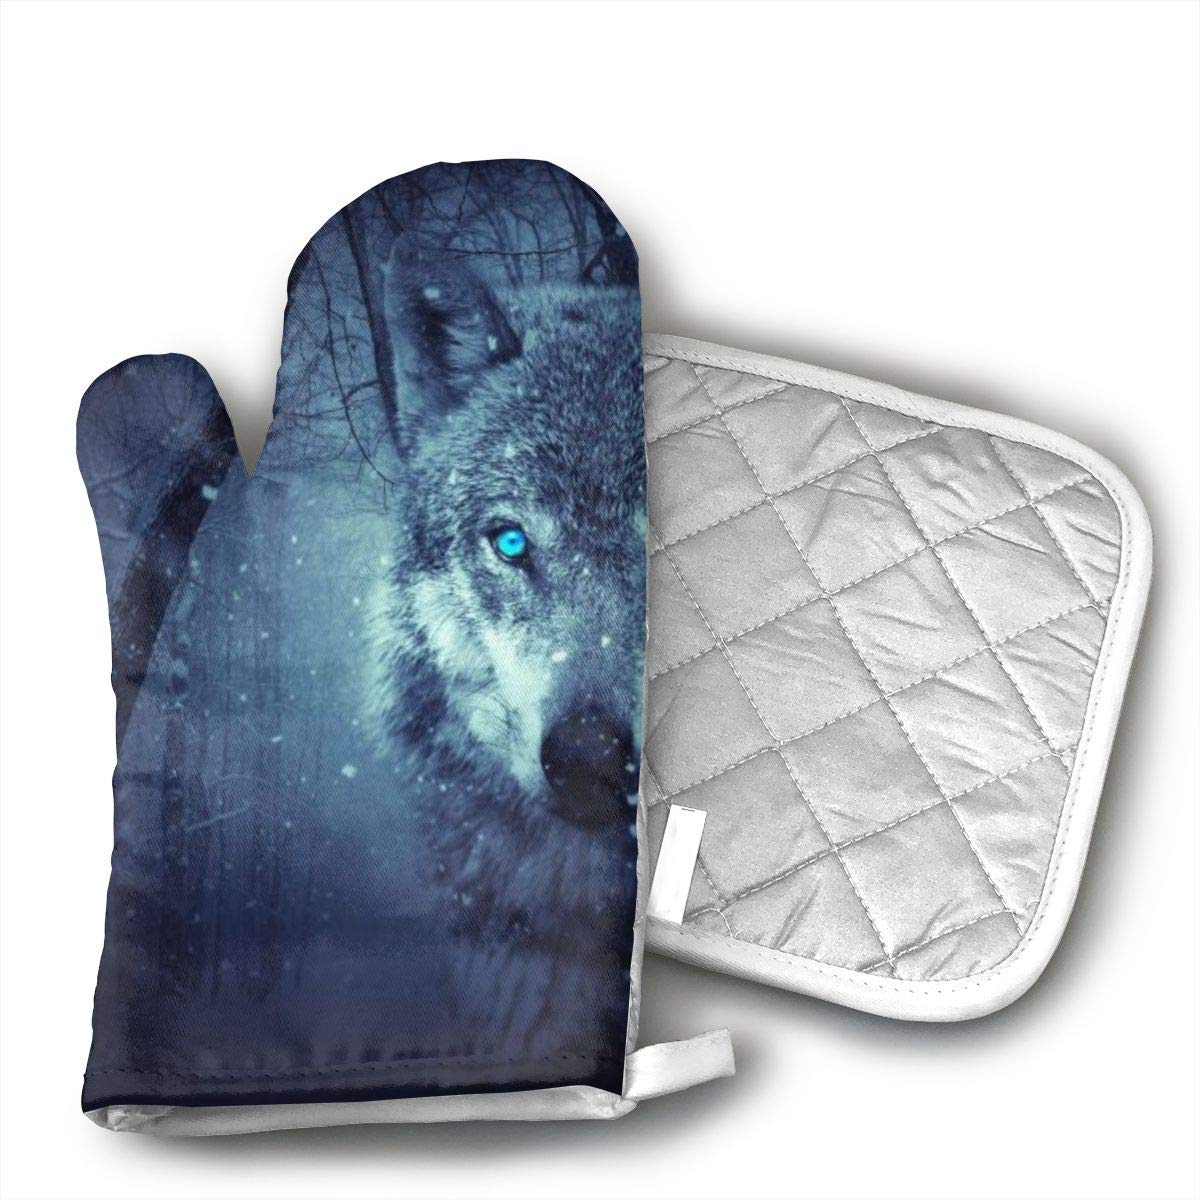 TUJABZA71 LZVQBQDYAA Fantasy Wolf Oven Gloves, Smart Home, Long, Mittens, Heat Resistant, Extra Thick, Quilted